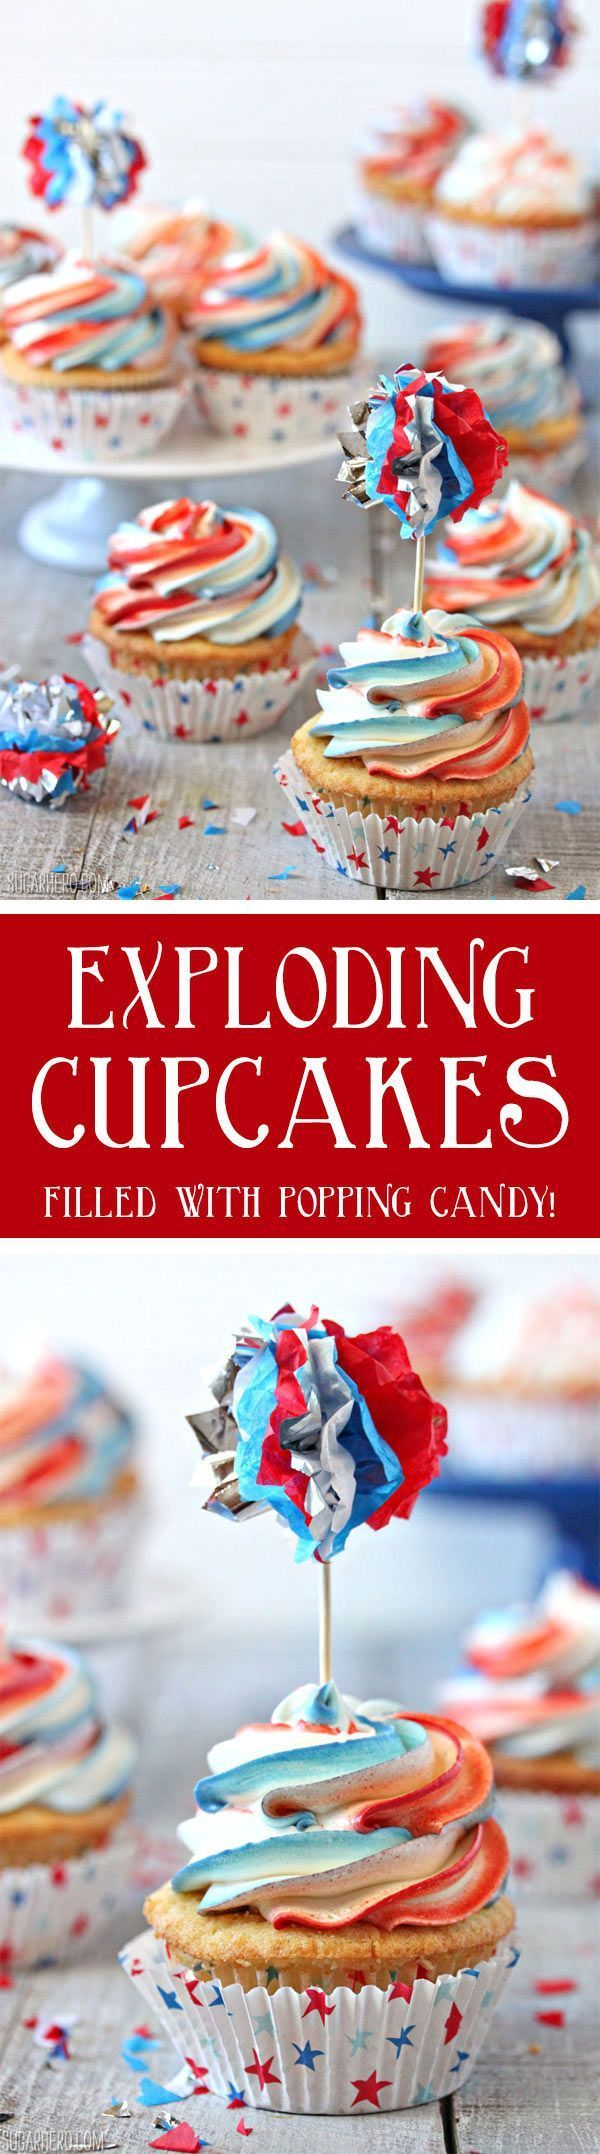 Exploding Cupcakes - filled with popping candy for an explosive July 4th treat! | From http://SugarHero.com #SugarHero #fourthofjuly #cupcakes